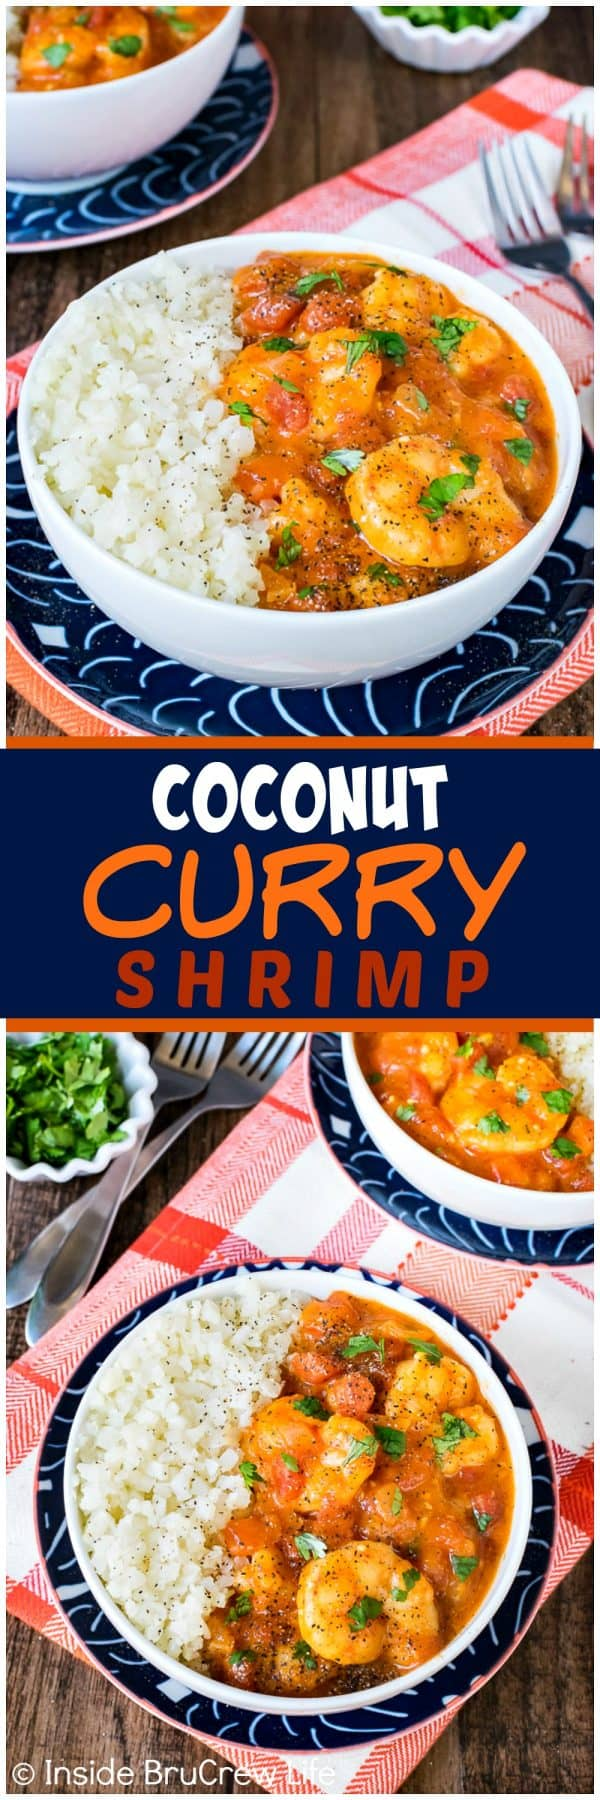 Coconut Curry Shrimp - this easy curry sauce is loaded with veggies and shrimp. This recipe can be made and serve in less than 30 minutes. Awesome healthy dinner for busy nights.